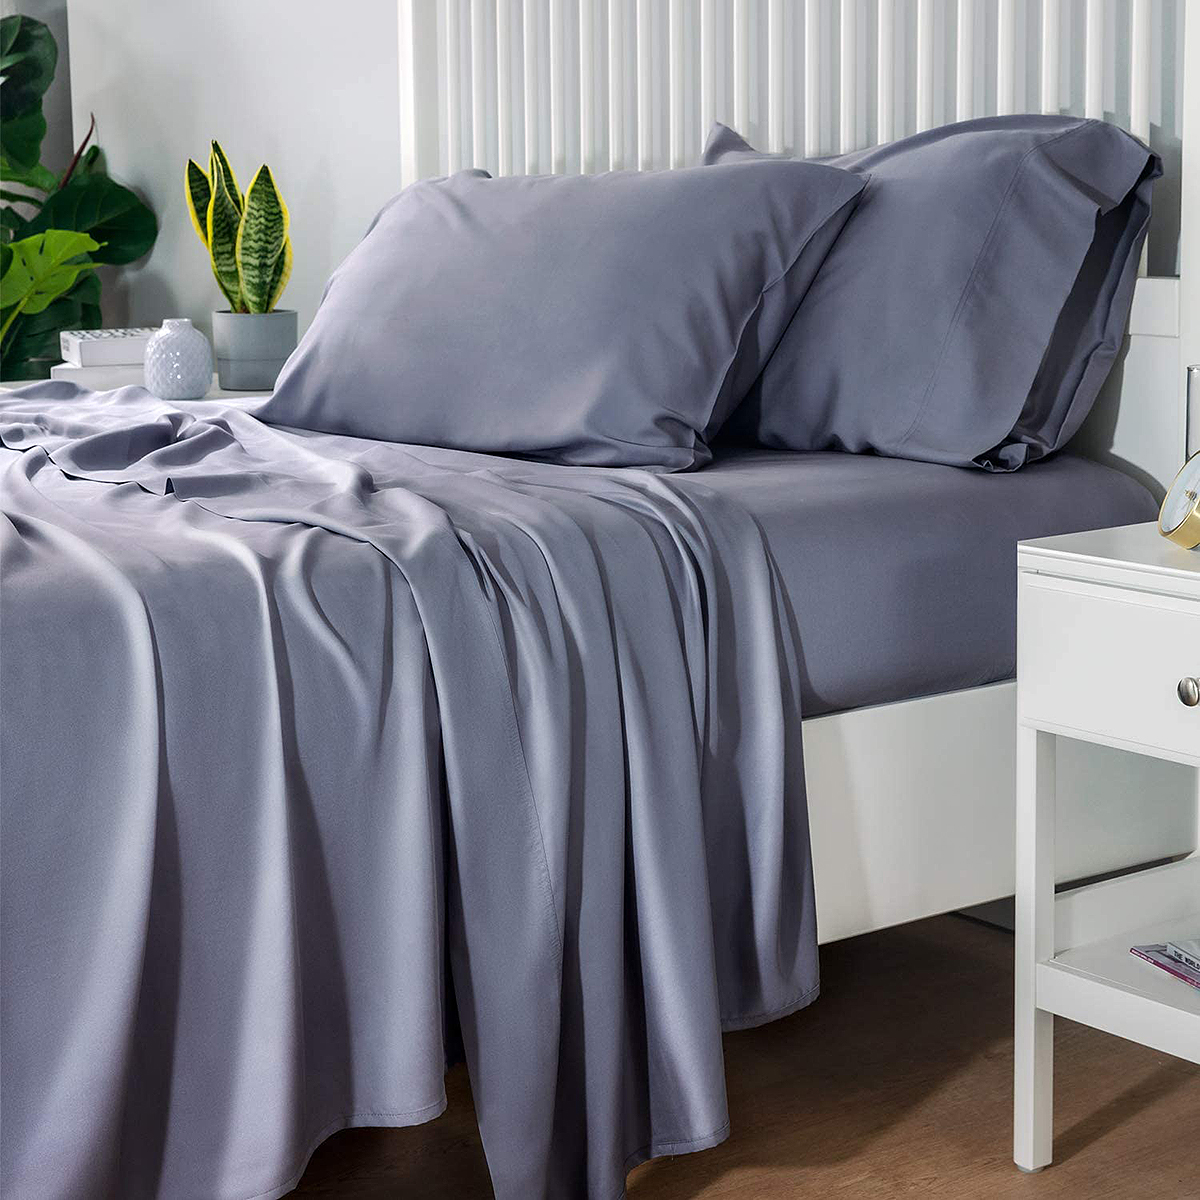 cooling-bedding-bamboo-sheets